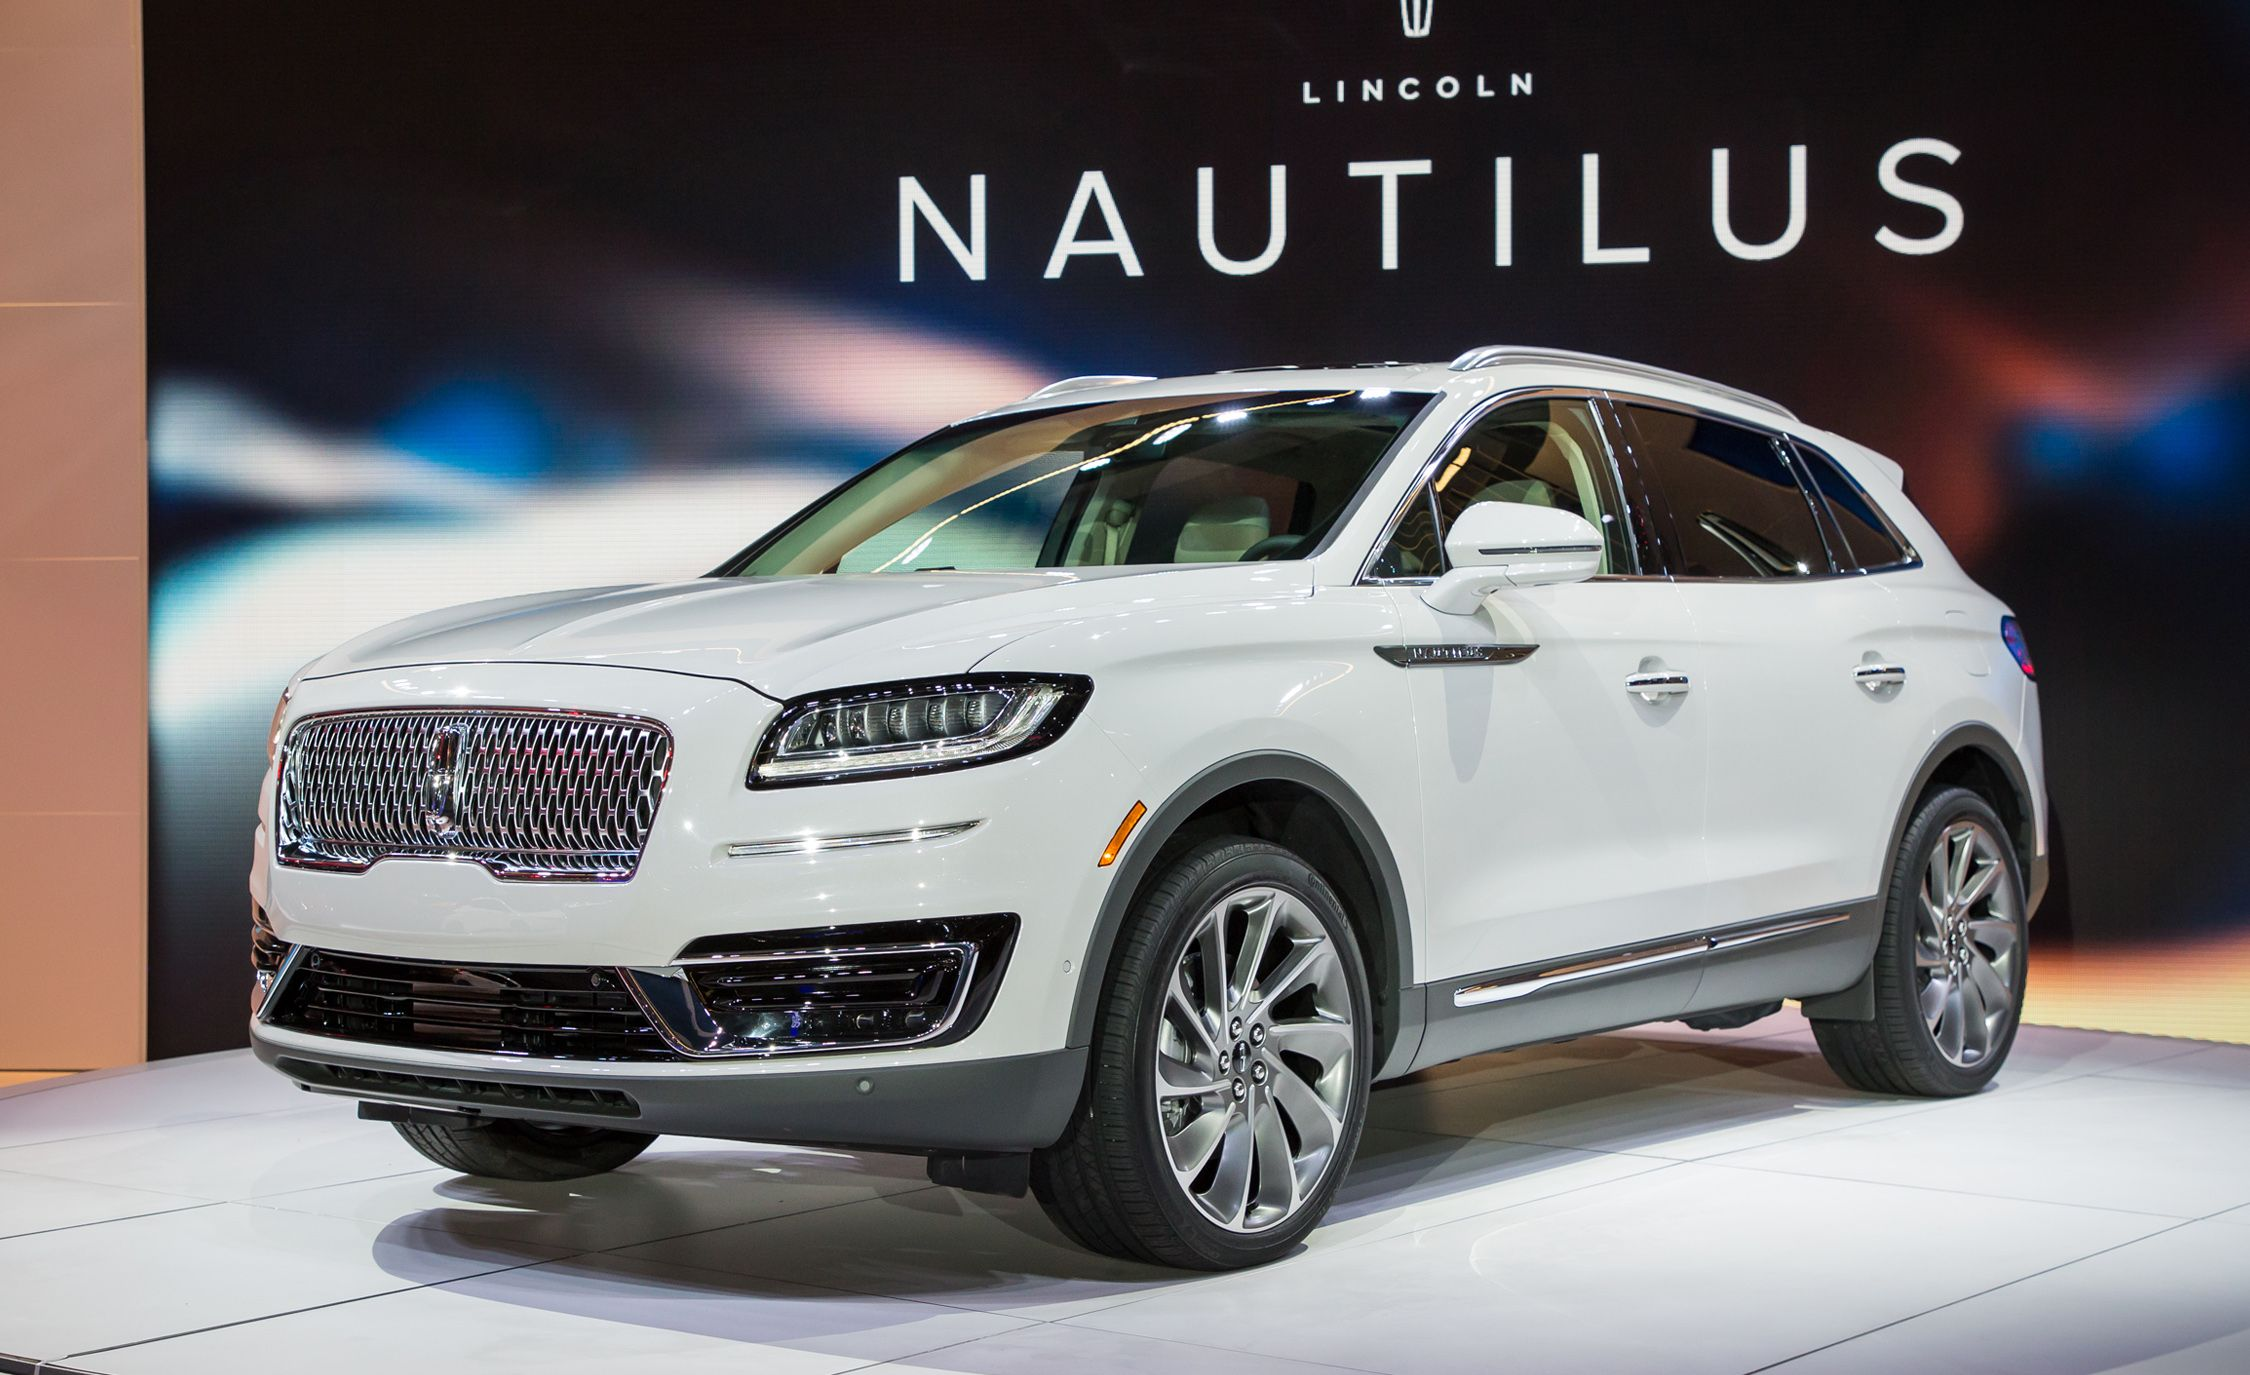 2019 Lincoln Nautilus SUV Replaces the MKX | News | Car ...